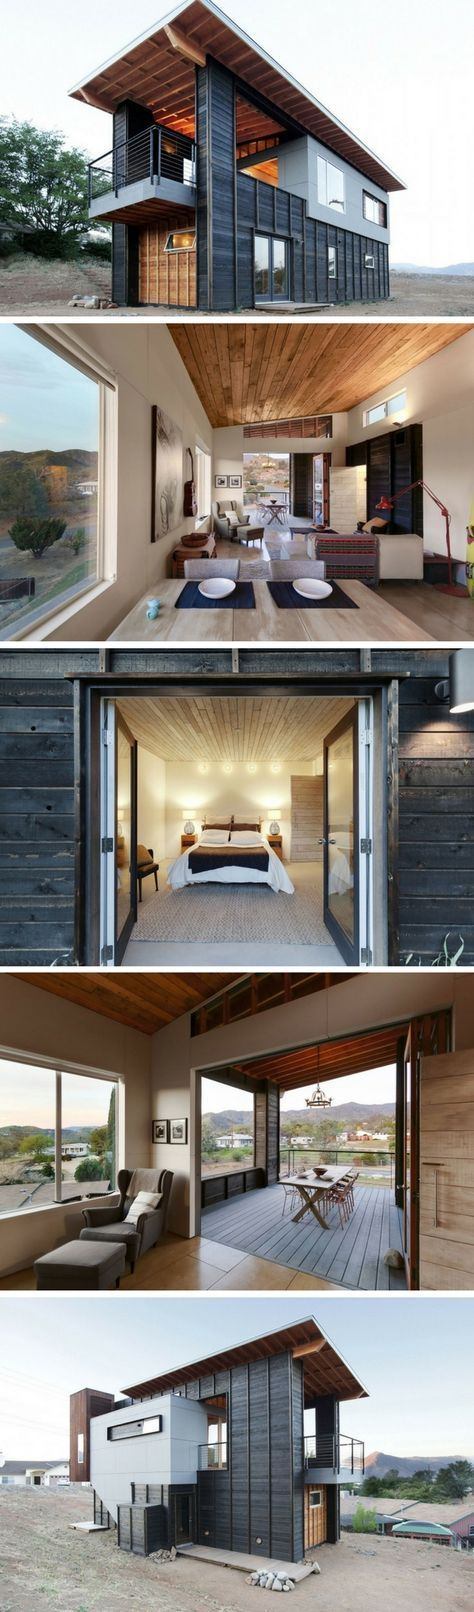 510 CABIN STUDIO SHIPPING CONTAINER HOME